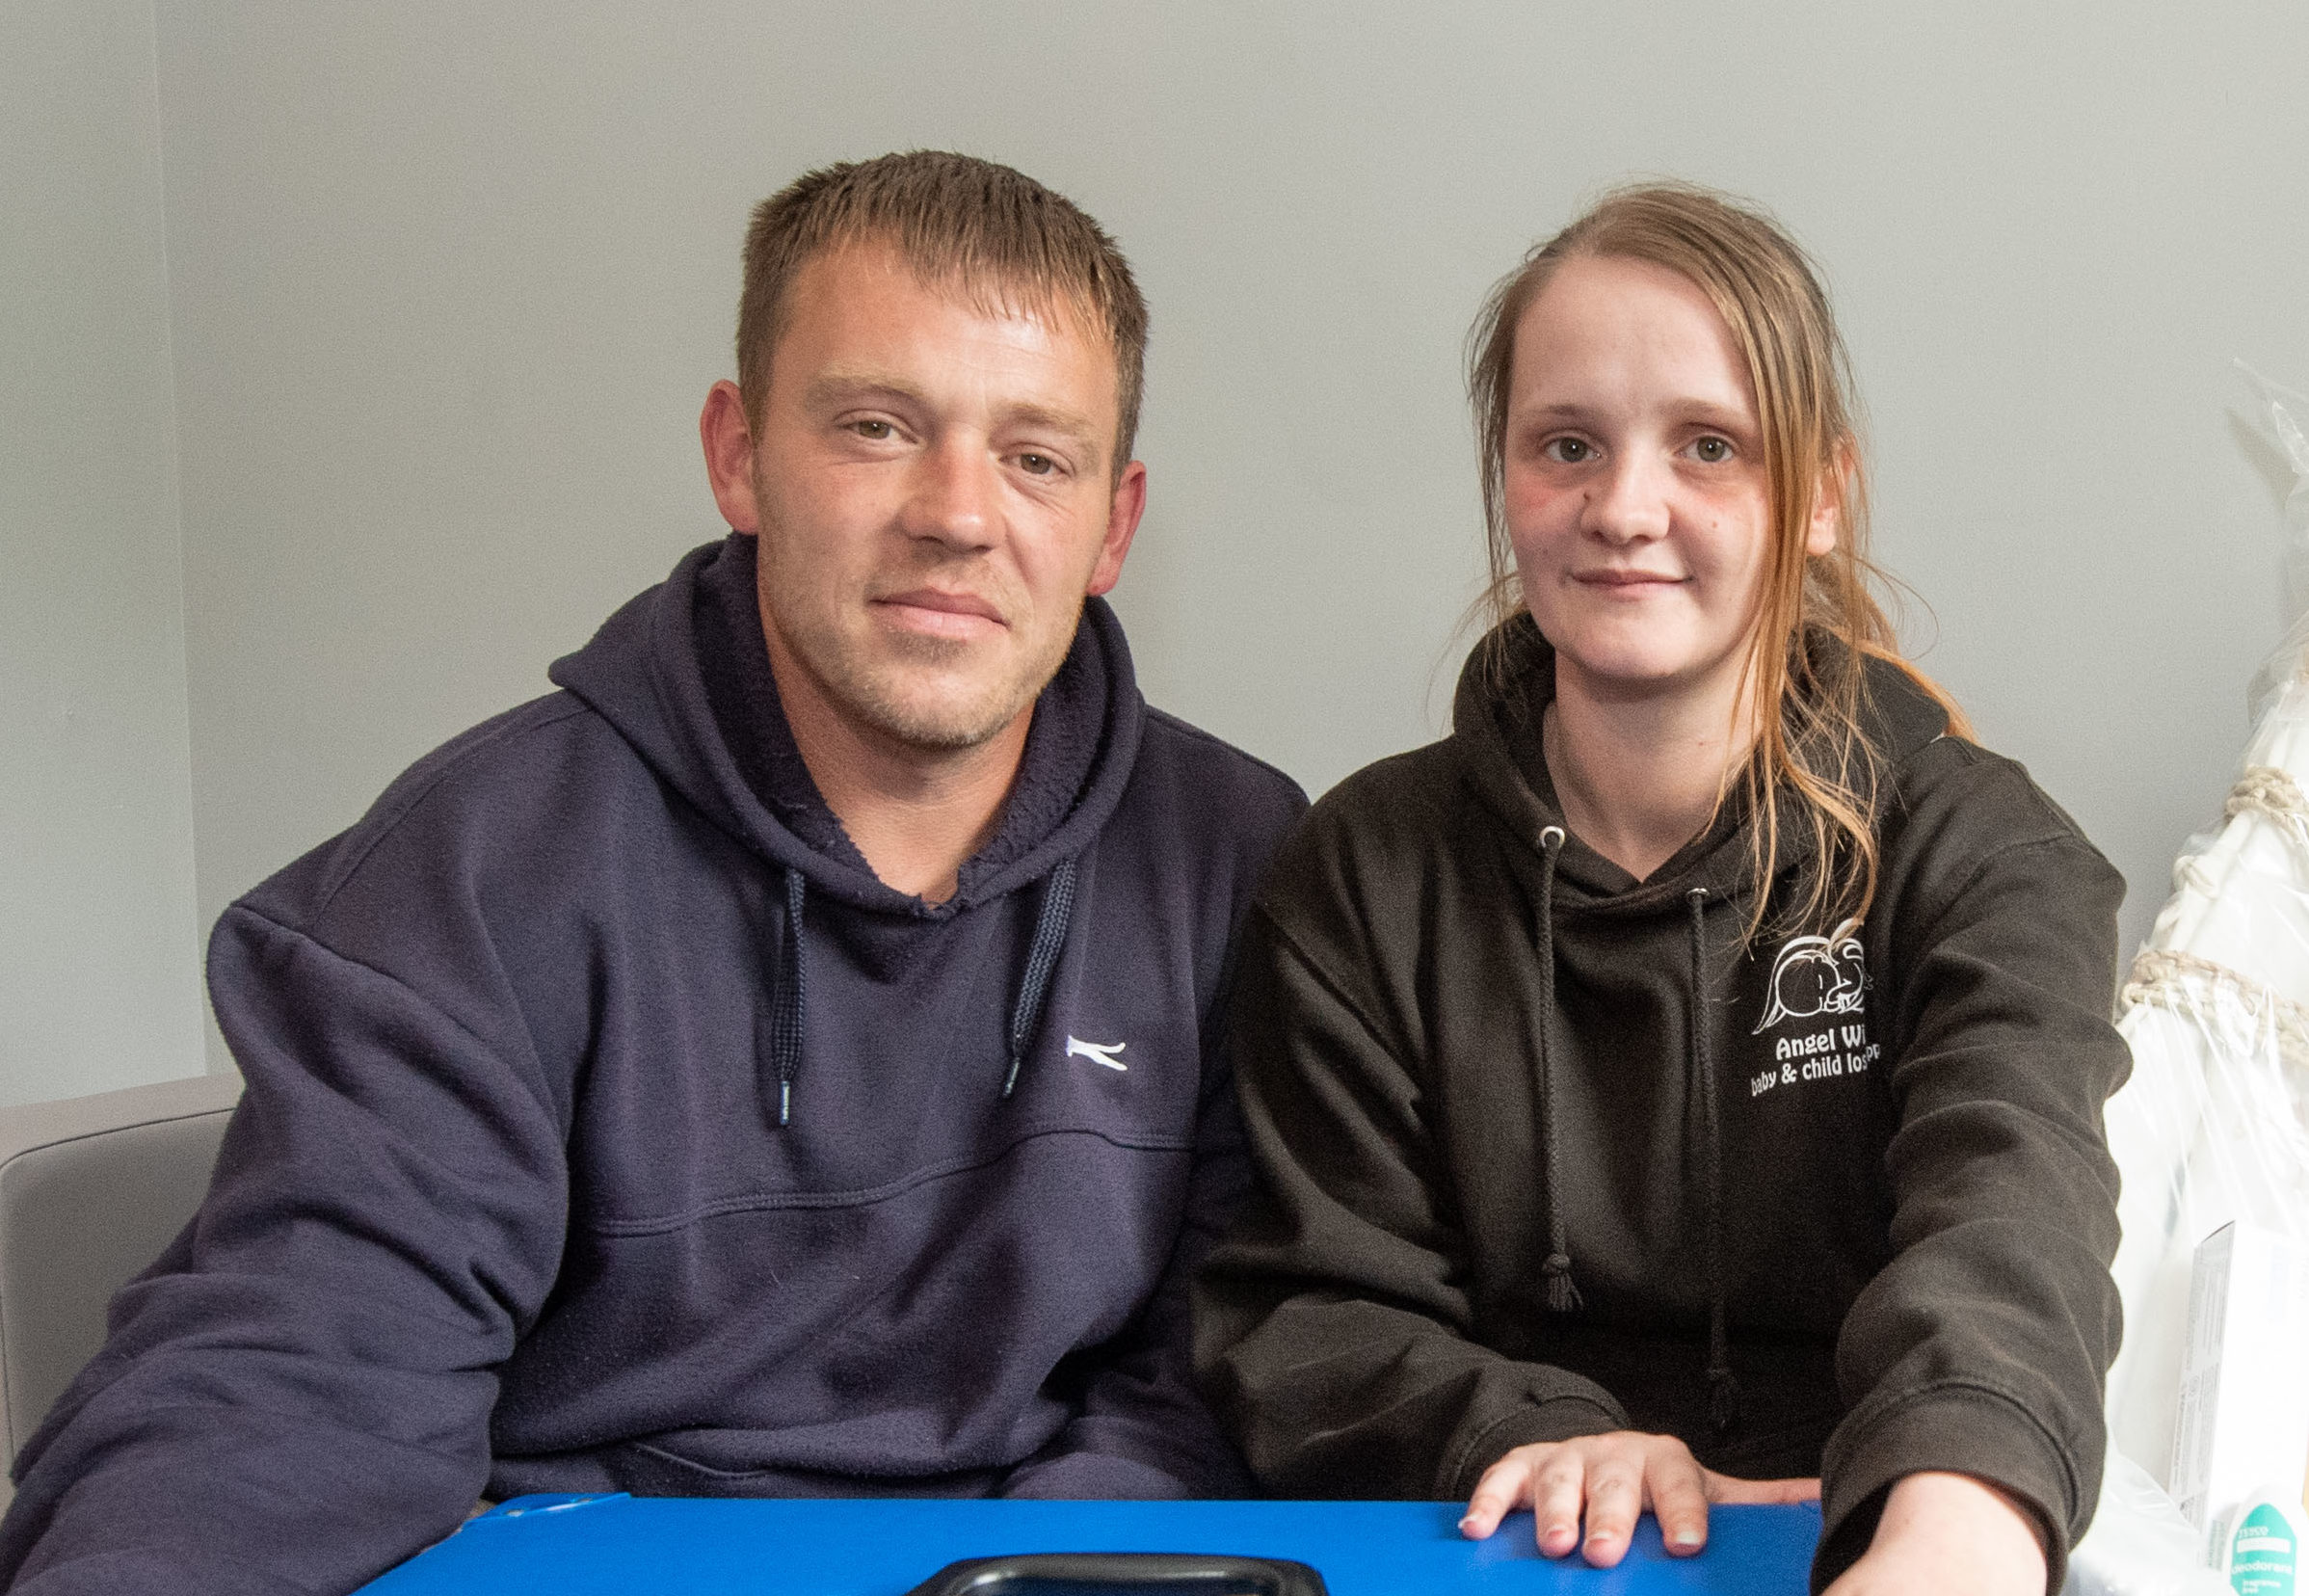 Inverness couple Stacey Melville and Gavin McQuillen